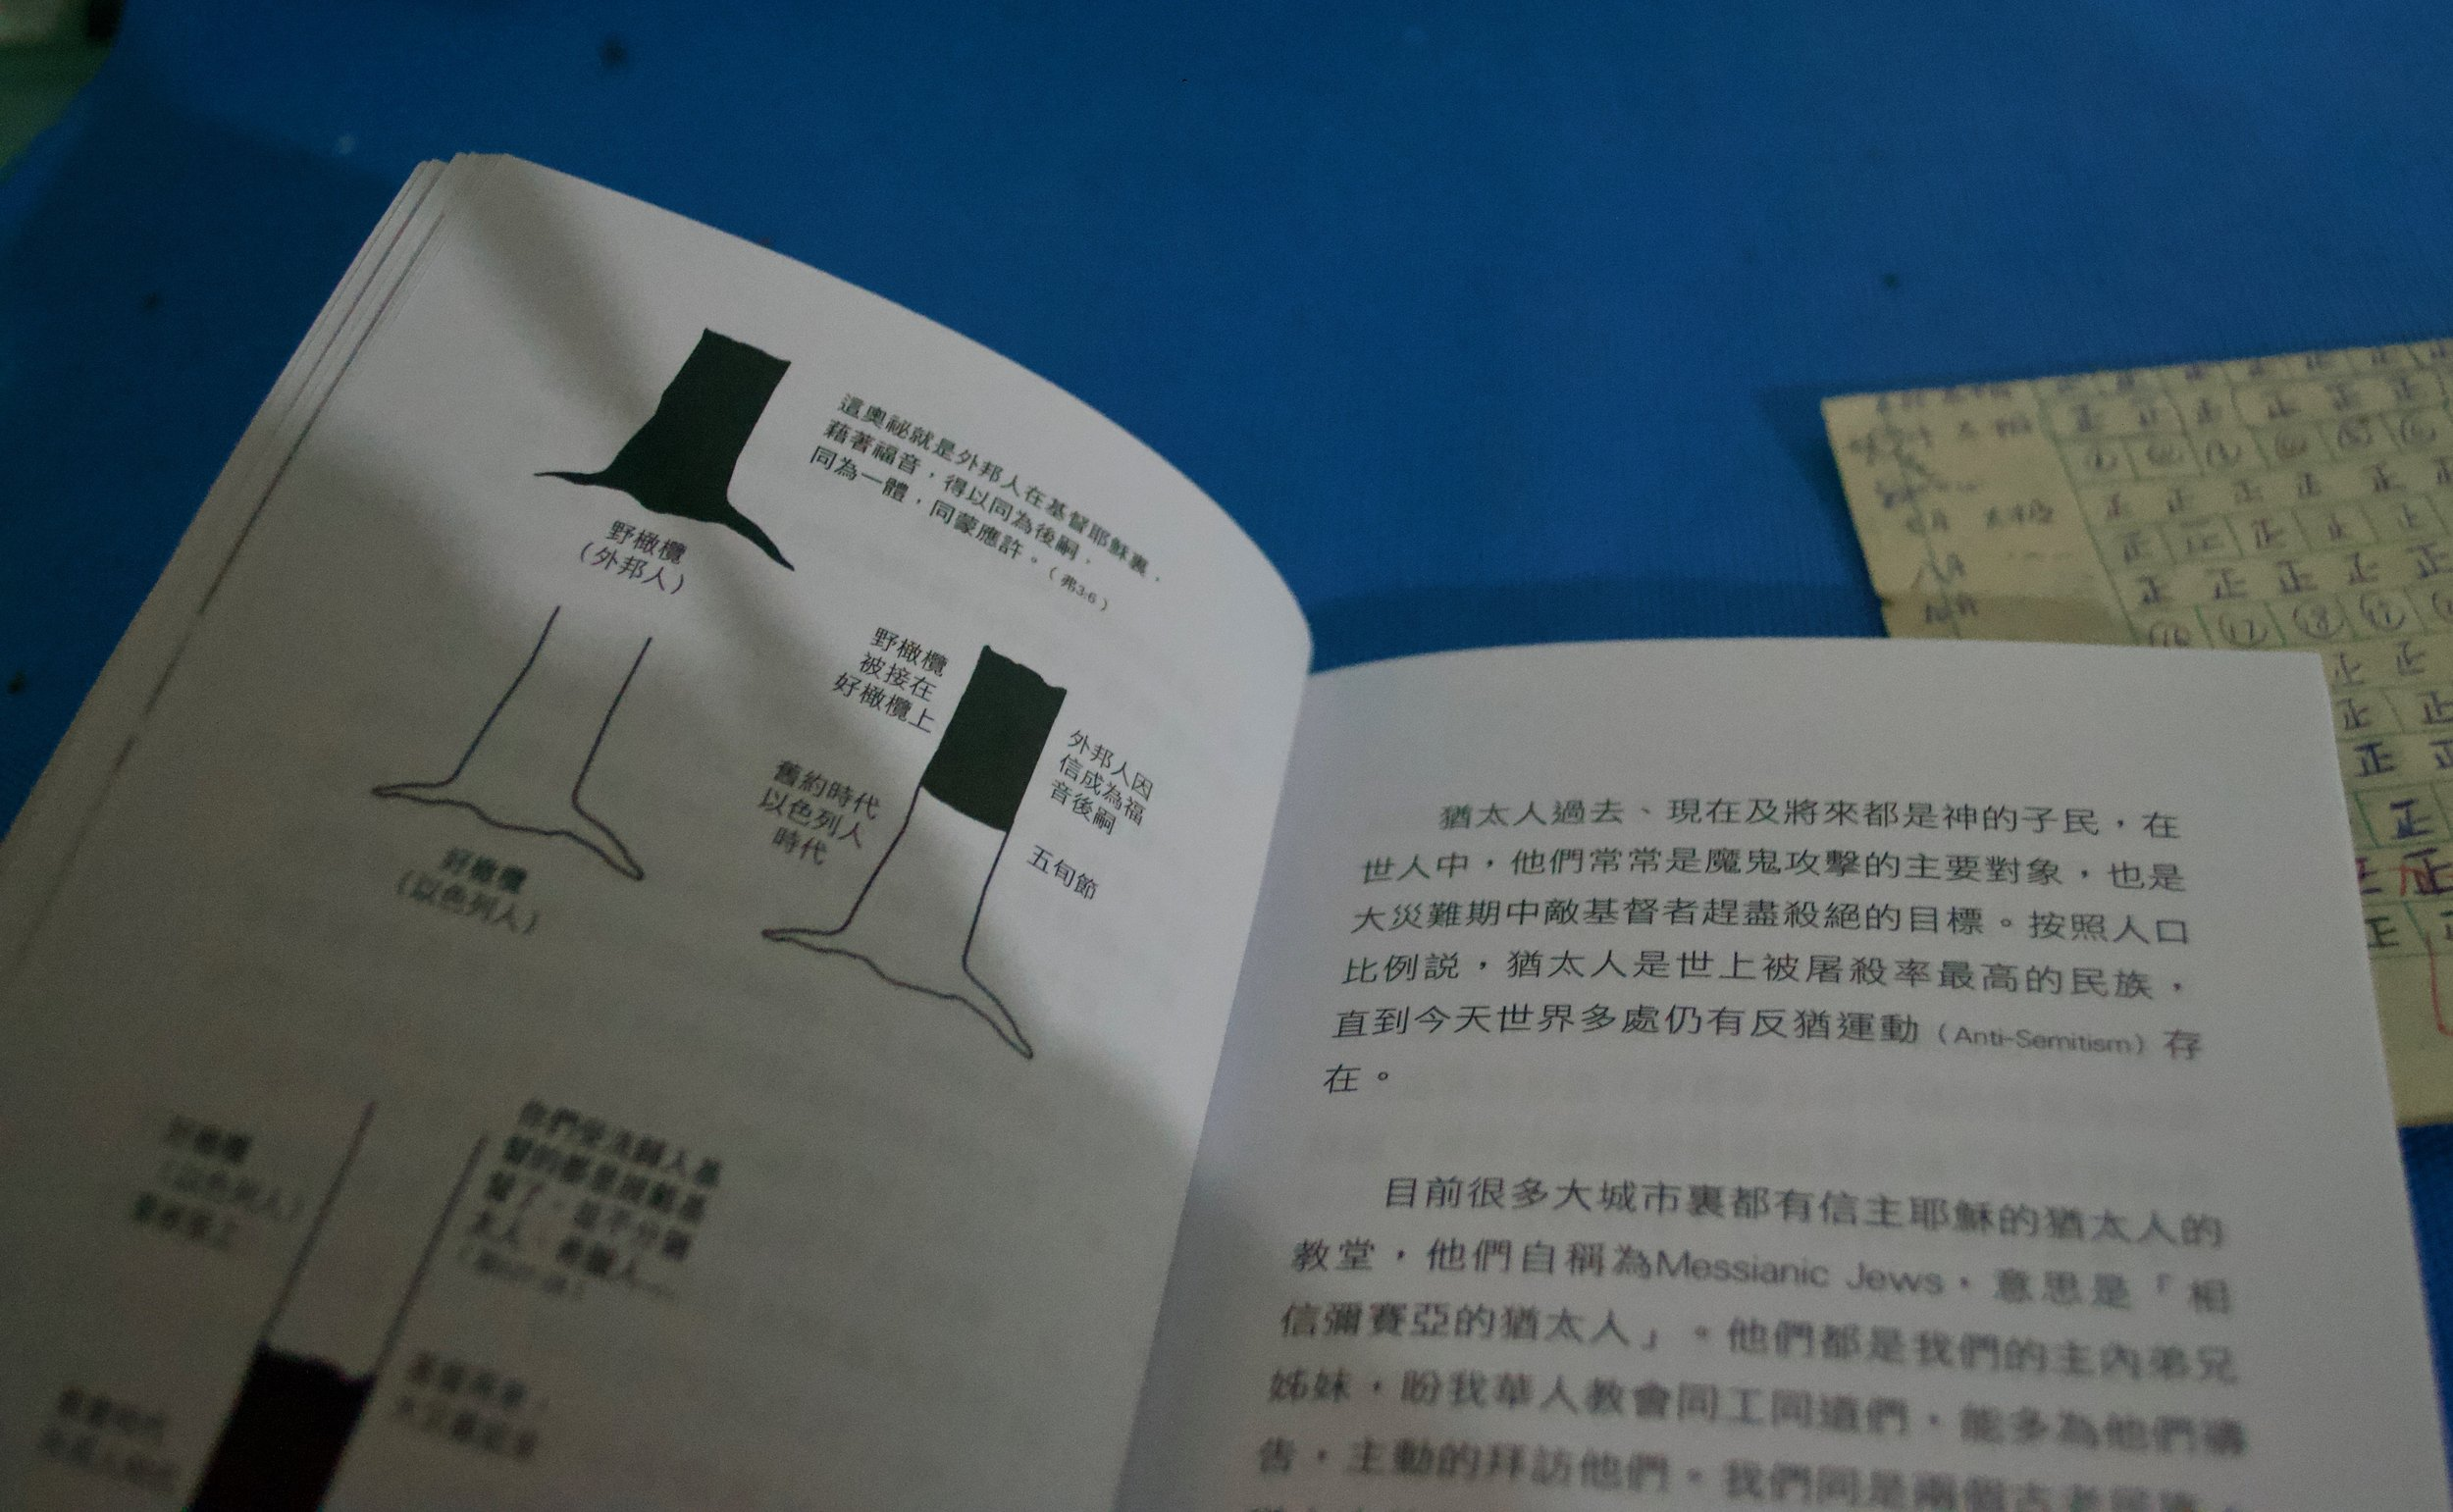 Booklet about people and history of Judaism in Chinese, treasured by modern day Kaifeng Jews.  [Nicholas Zhang Archives]